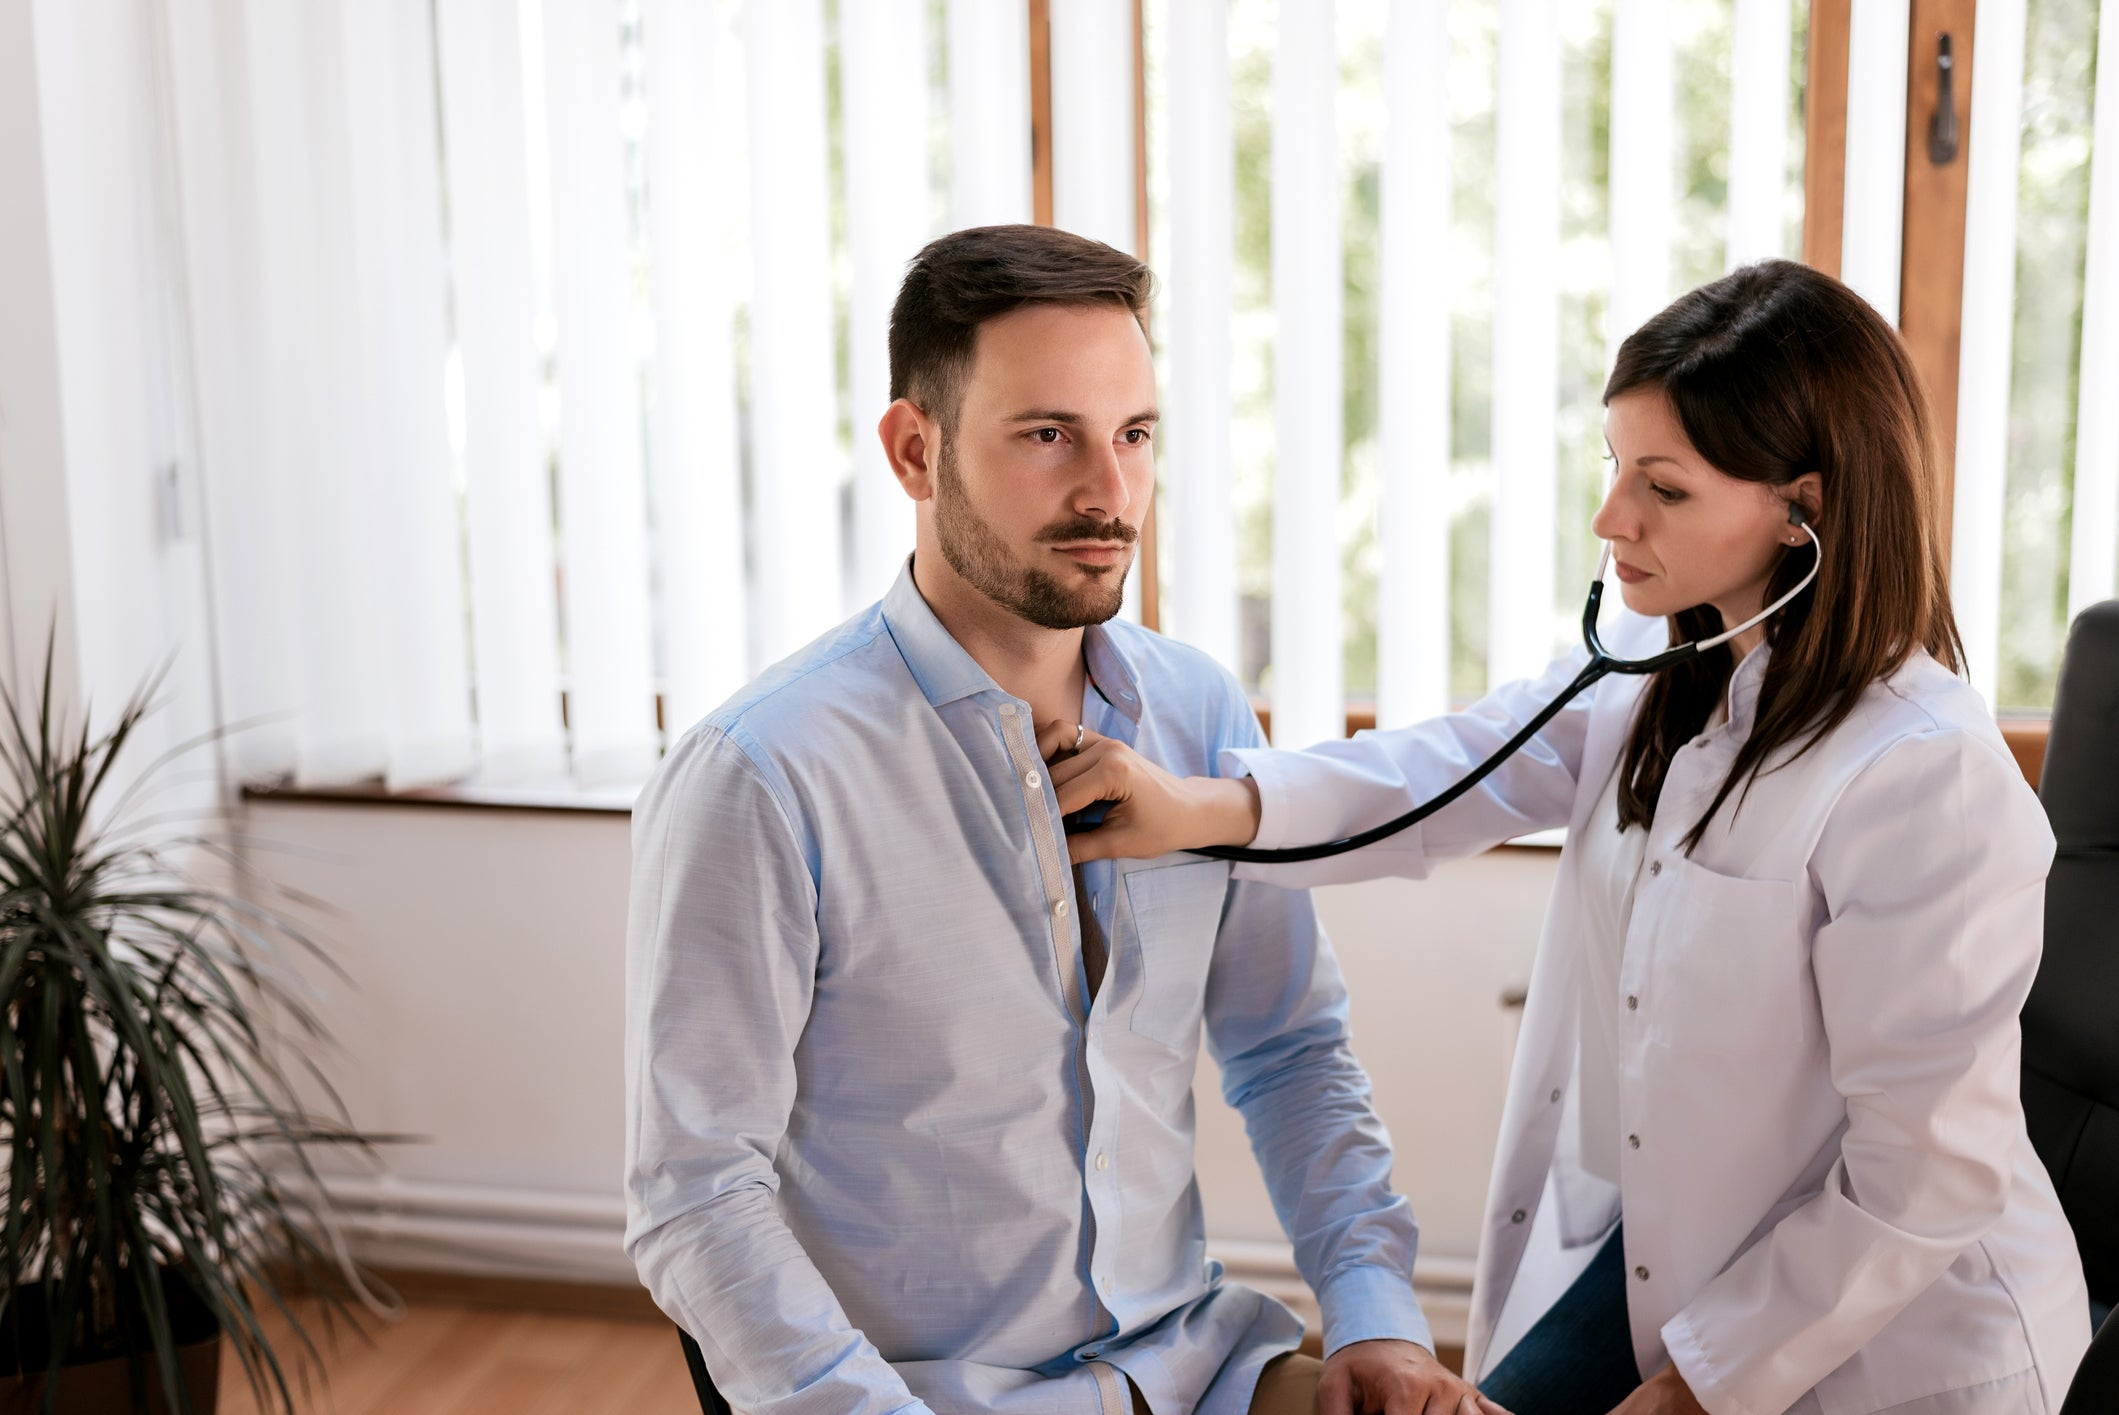 Female doctor with stethoscope on male patient's chest.